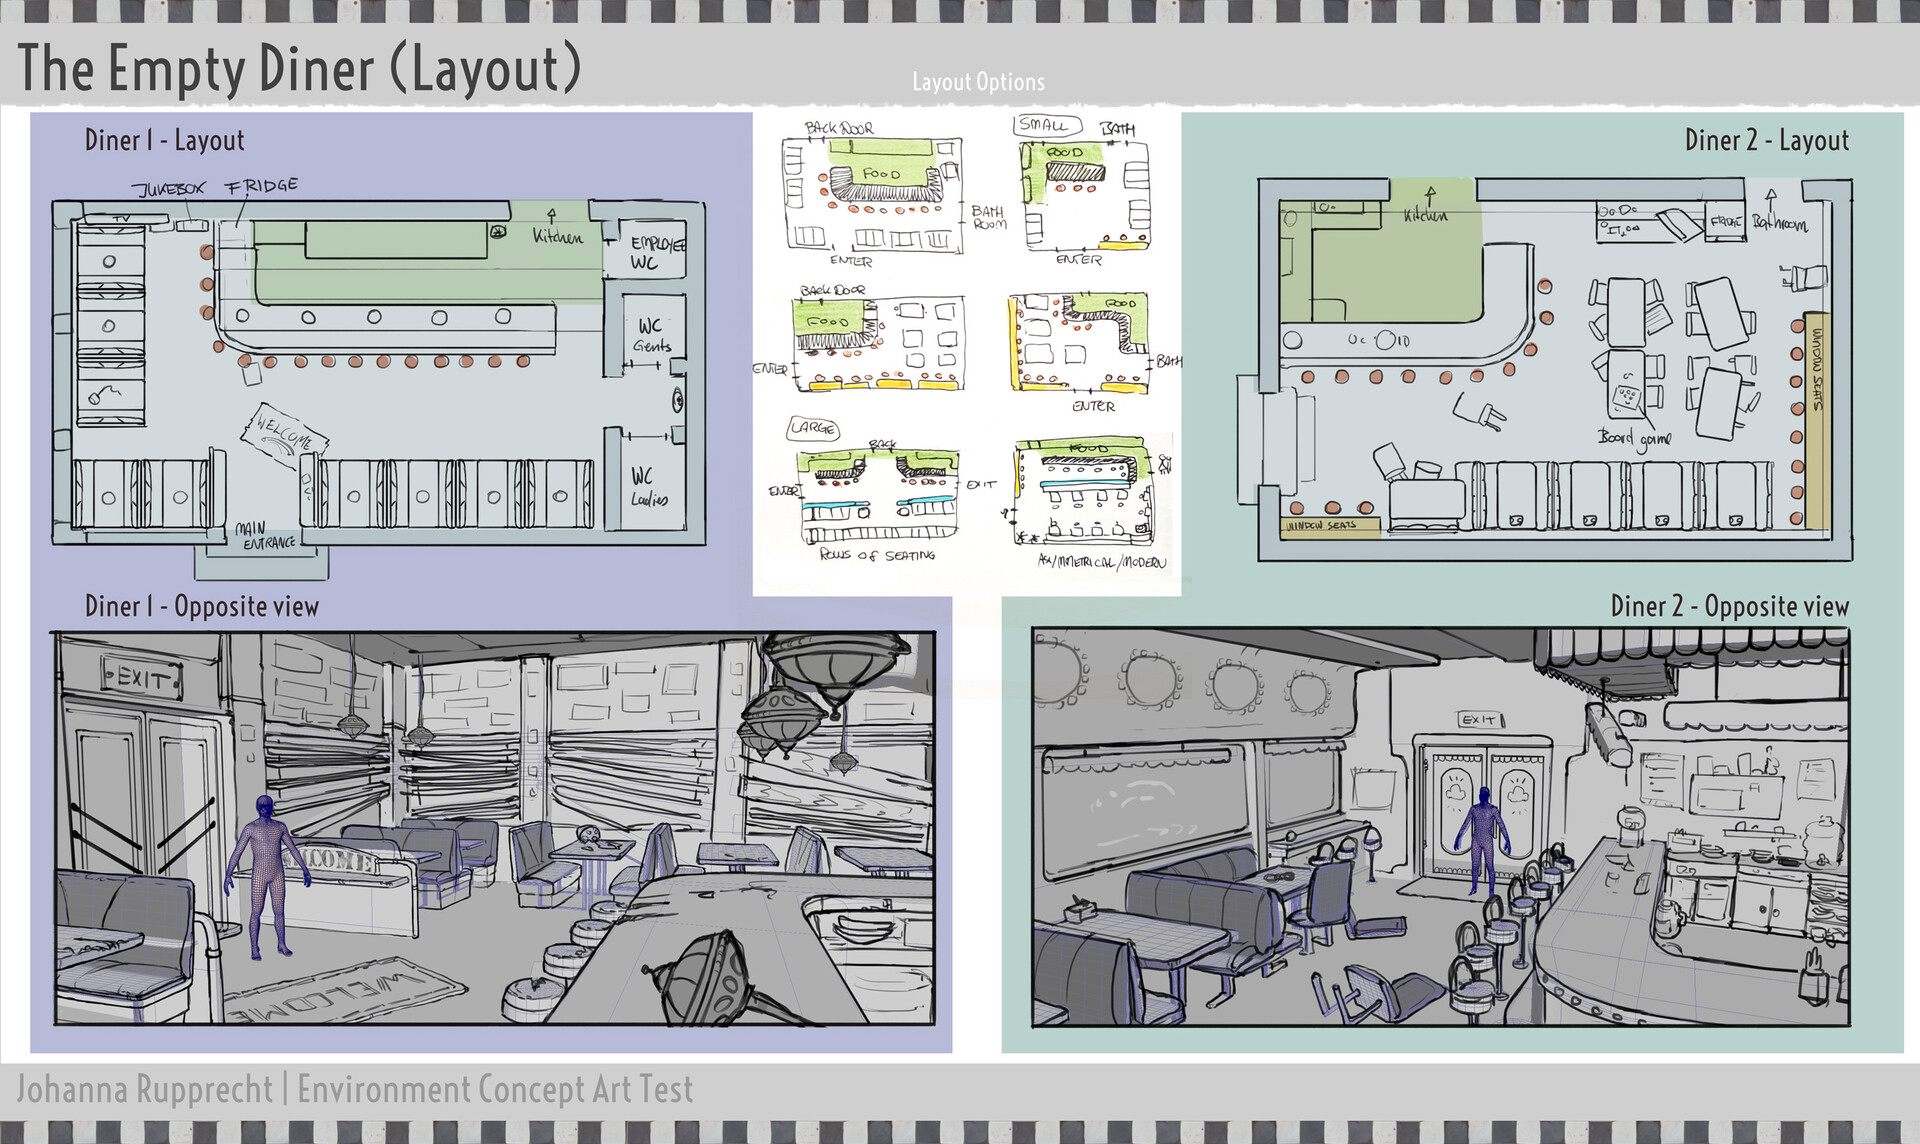 Johanna rupprecht jr diner 6 layout